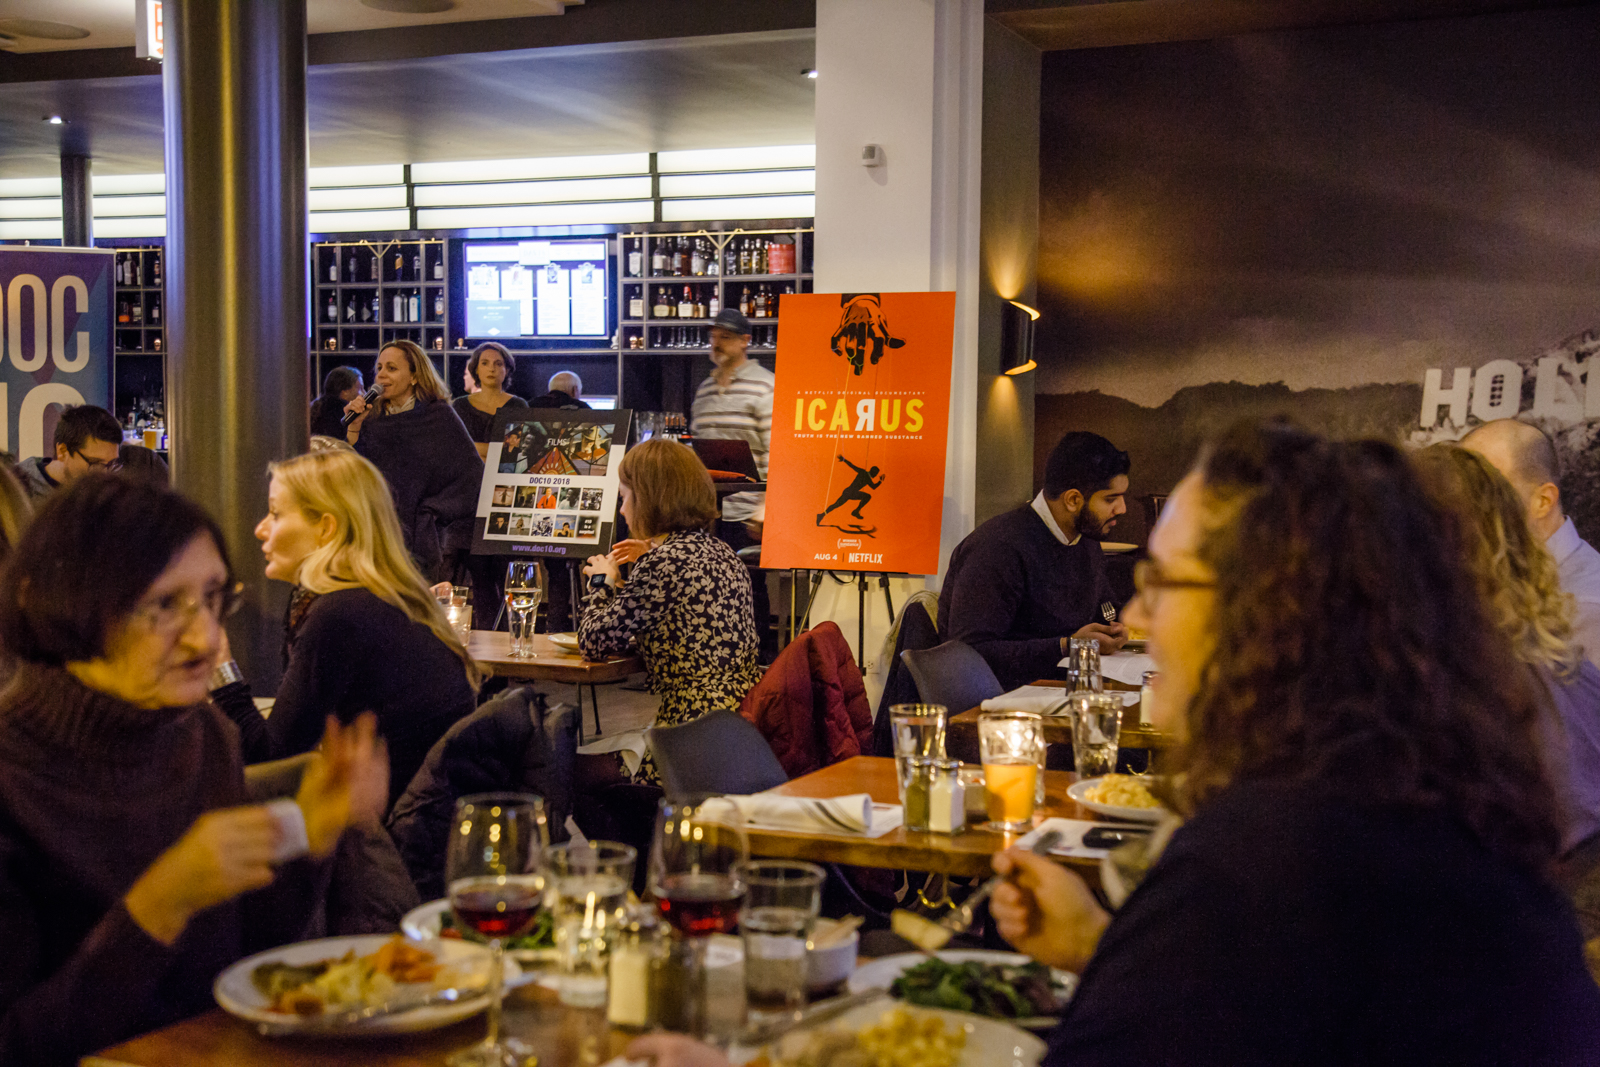 180222-dinner-and-docs-icarus-030.jpg